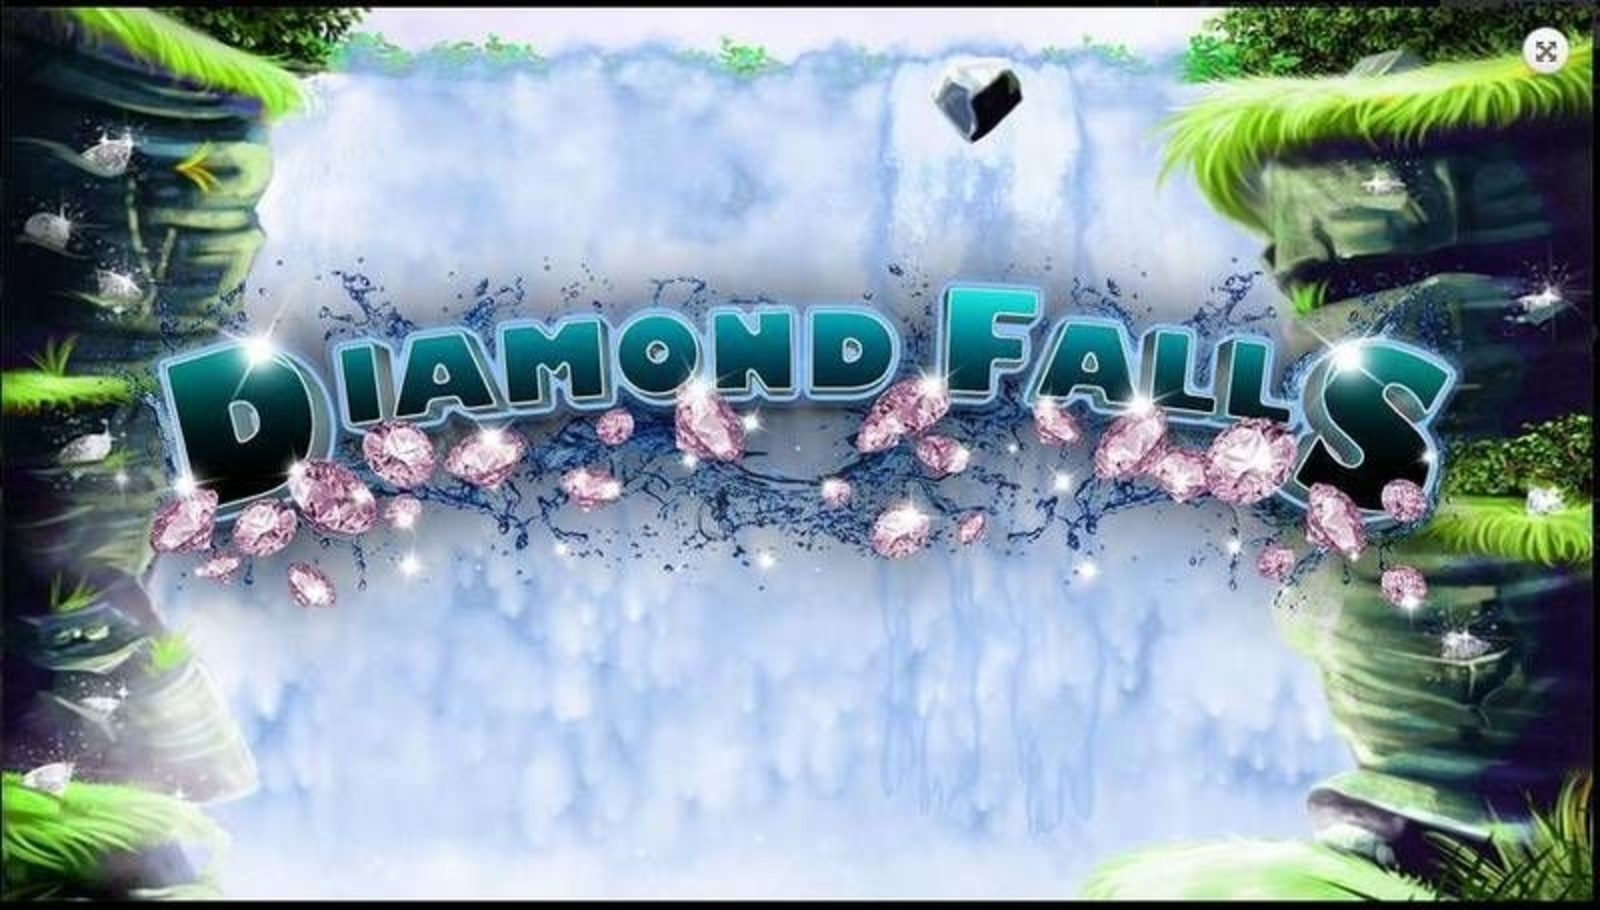 The Diamond falls Online Slot Demo Game by 2 By 2 Gaming